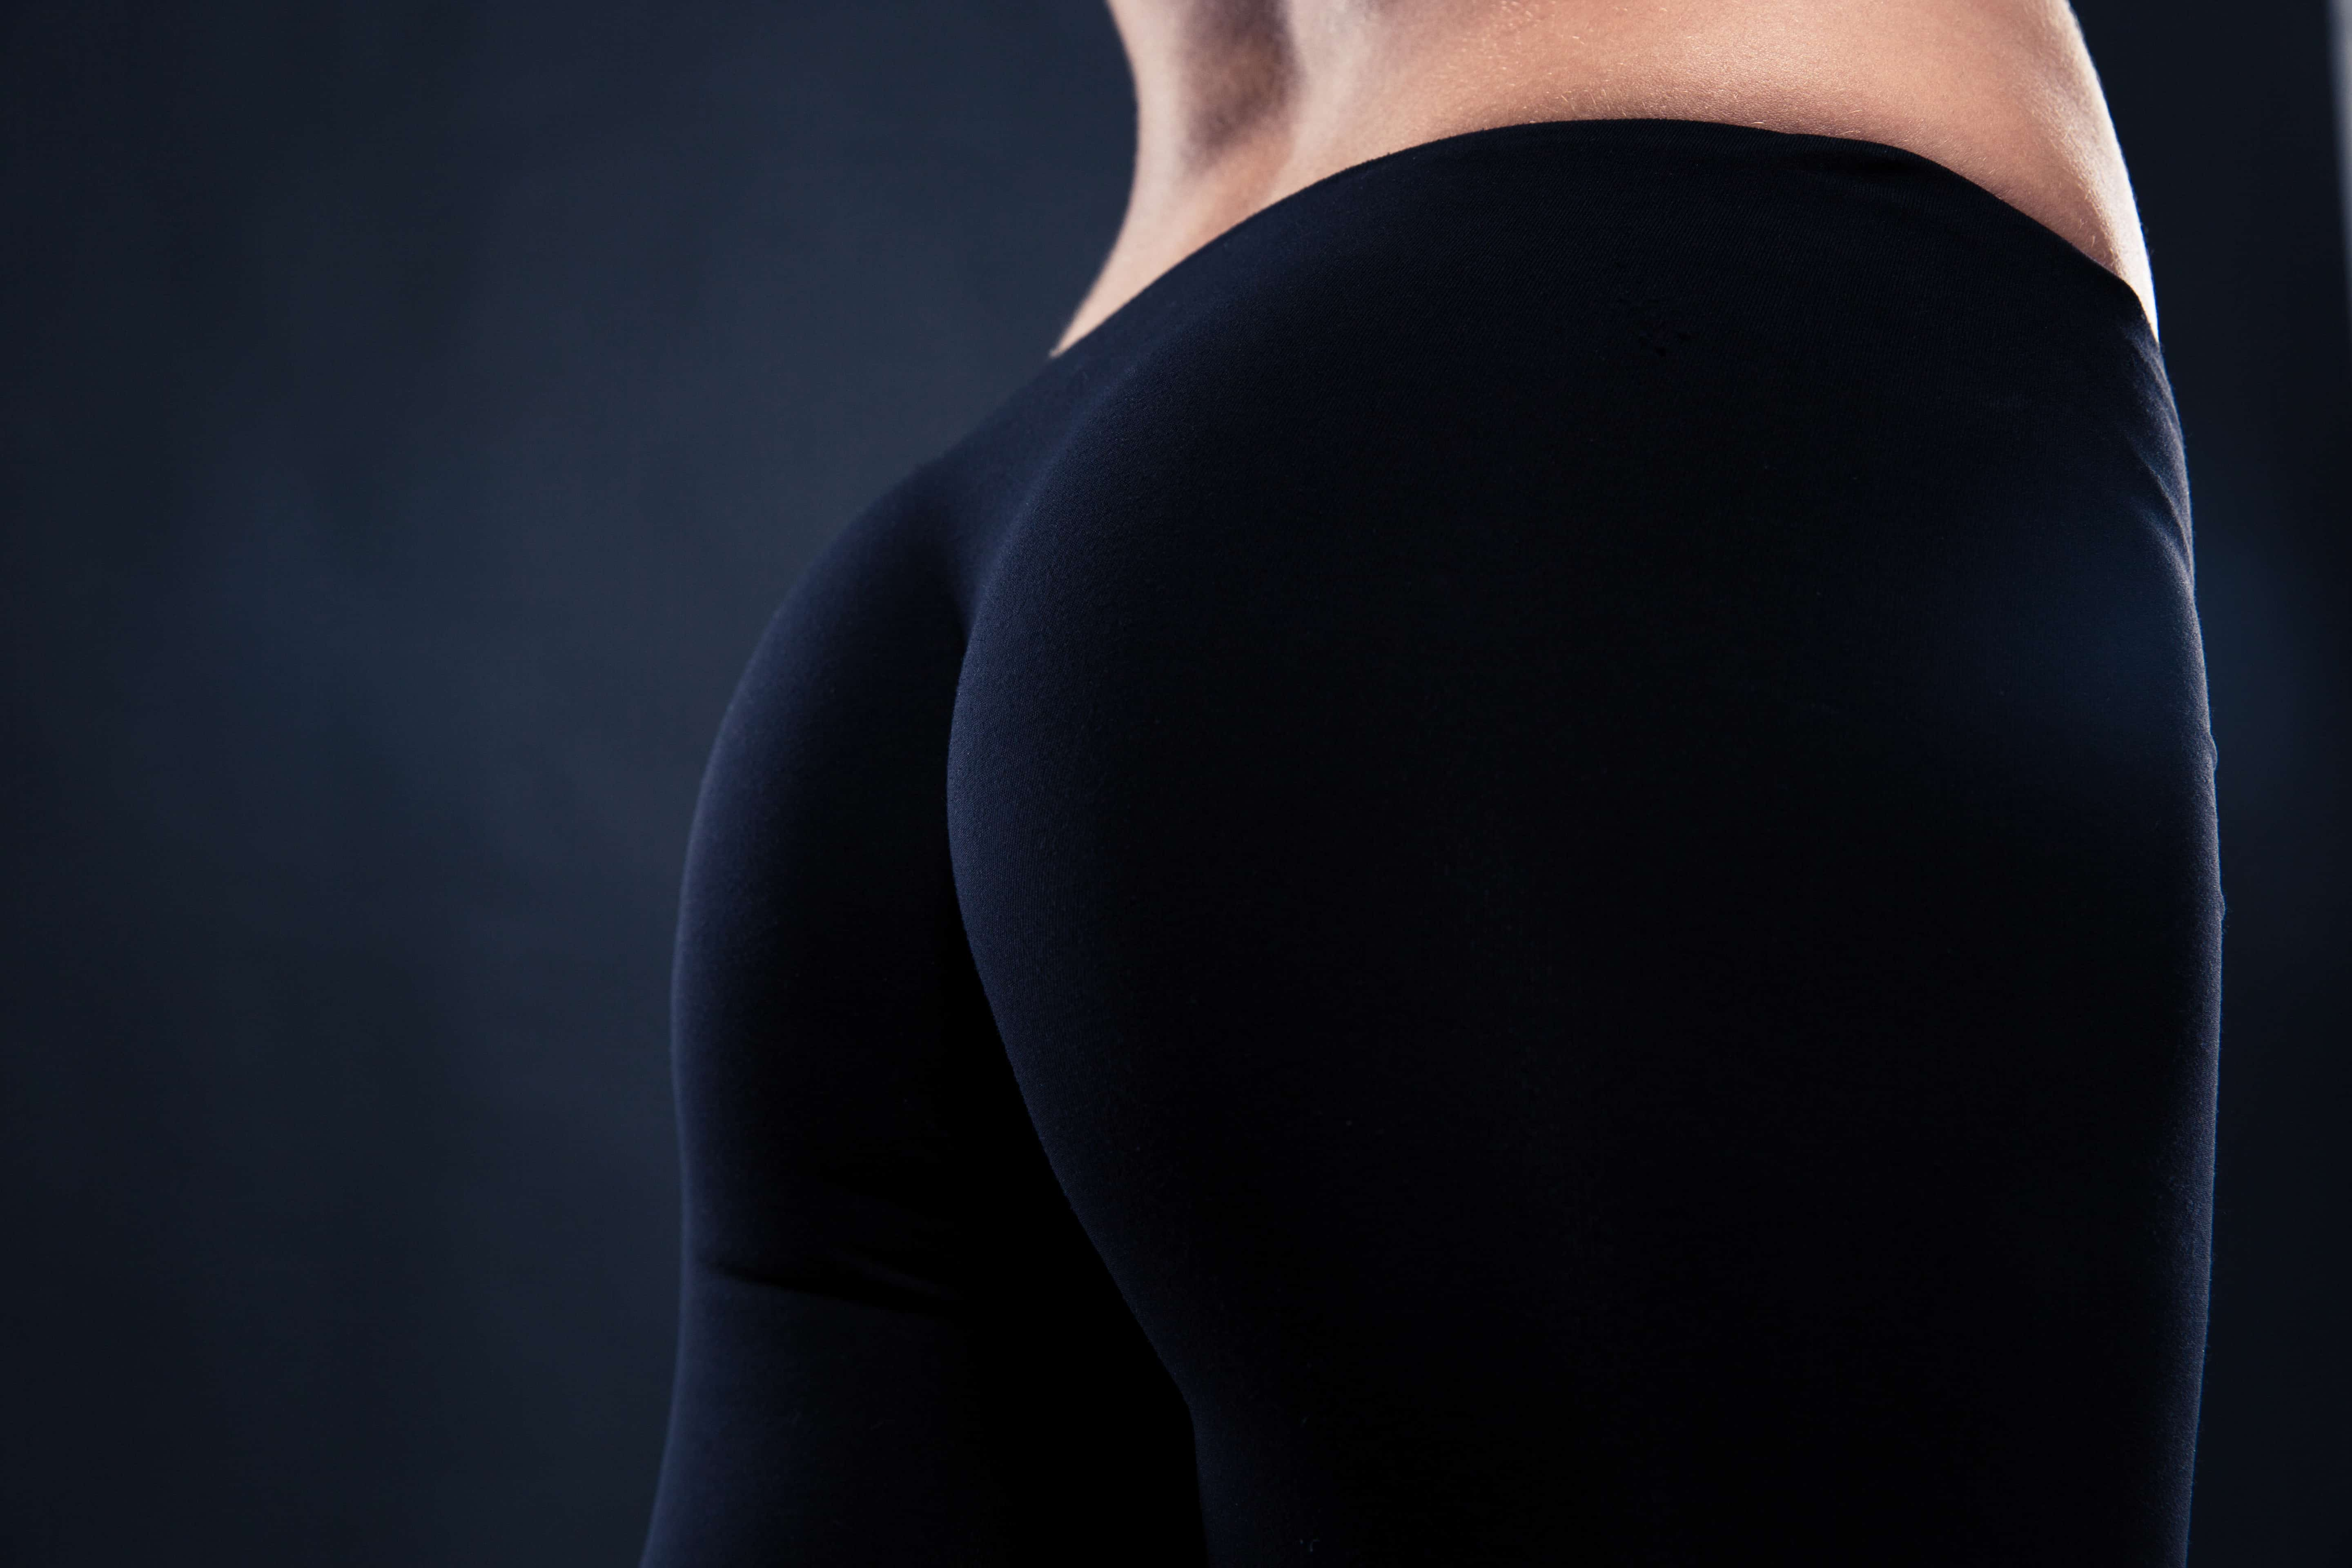 8 exercises to build a better butt